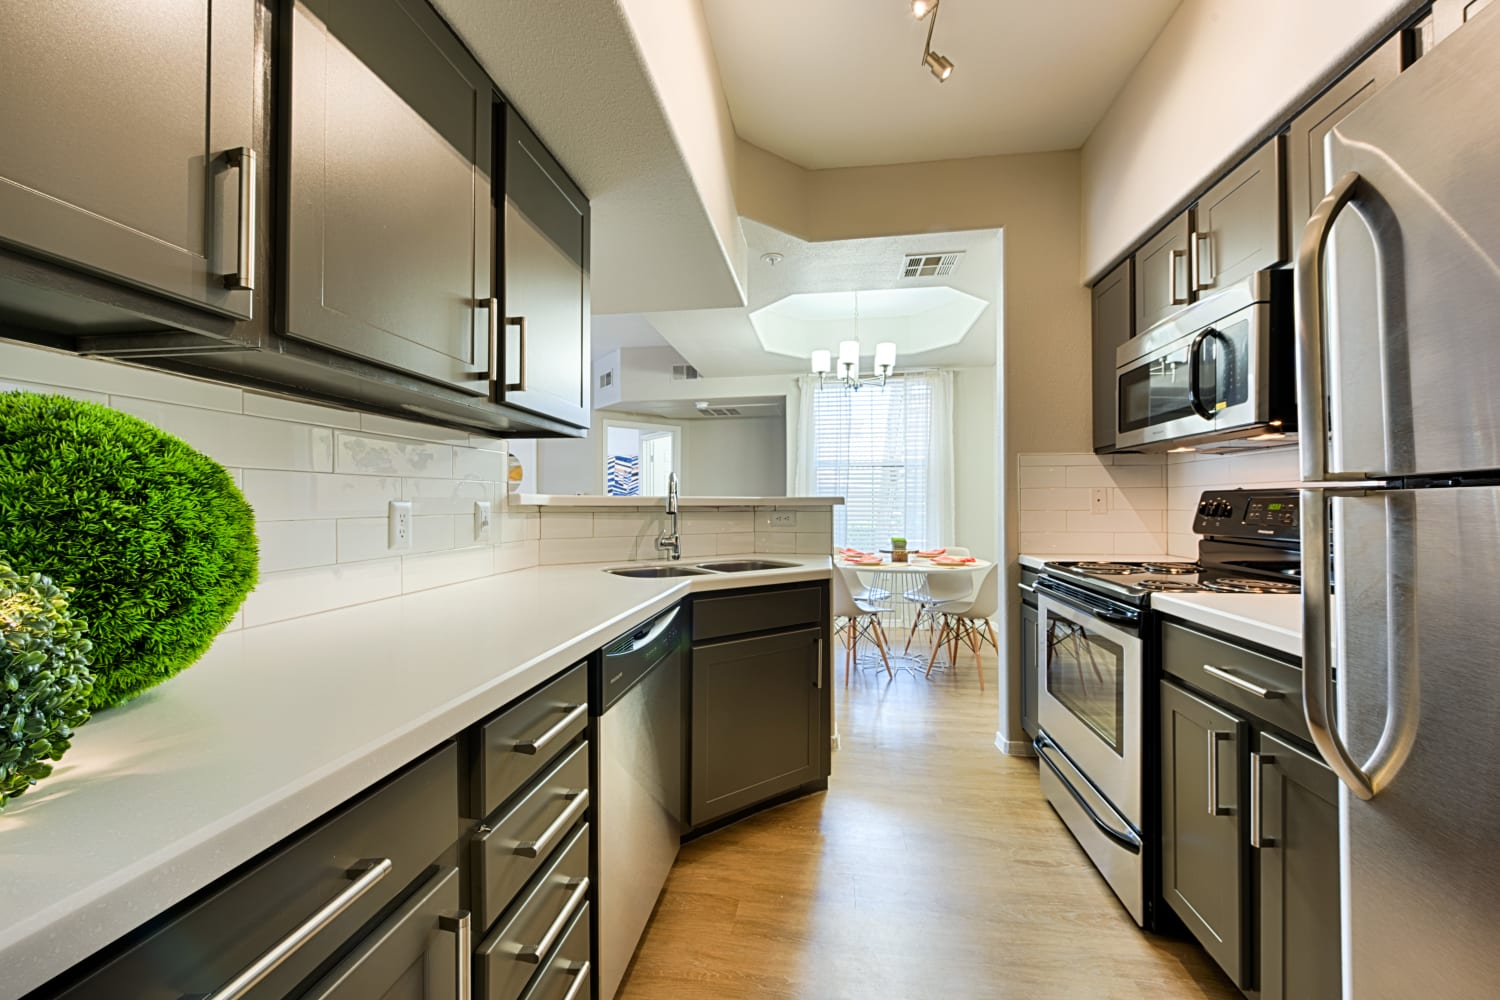 Modern kitchens with sleek black cabinetry at Sonoran Vista Apartments in Scottsdale, Arizona